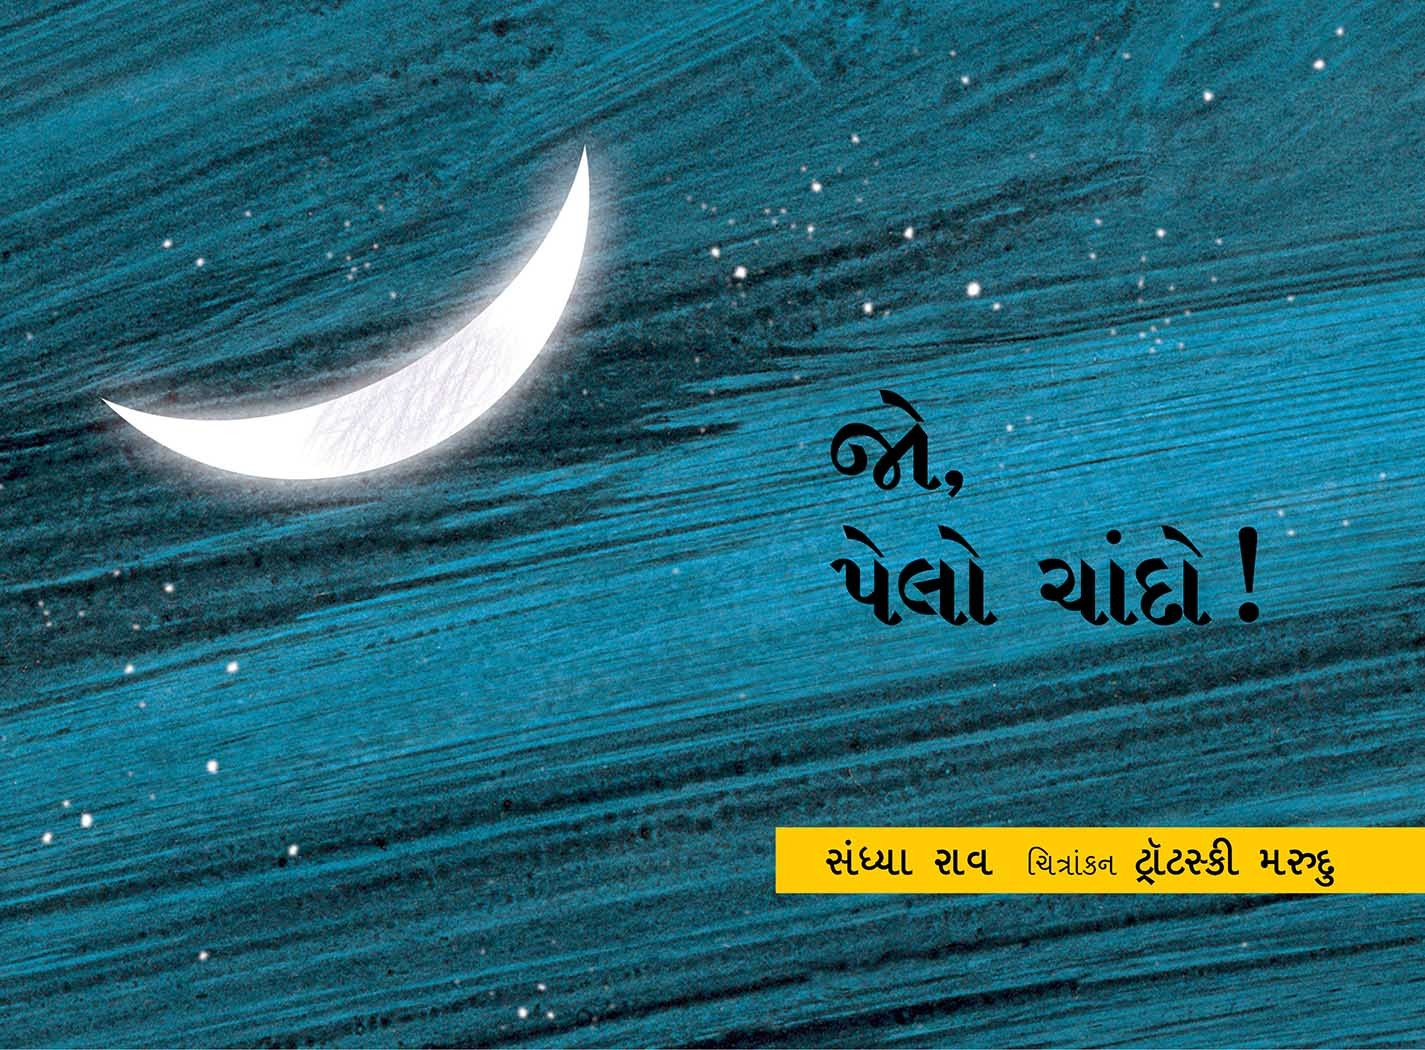 Look, The Moon!/Jo, Pelo Chando! (Gujarati)